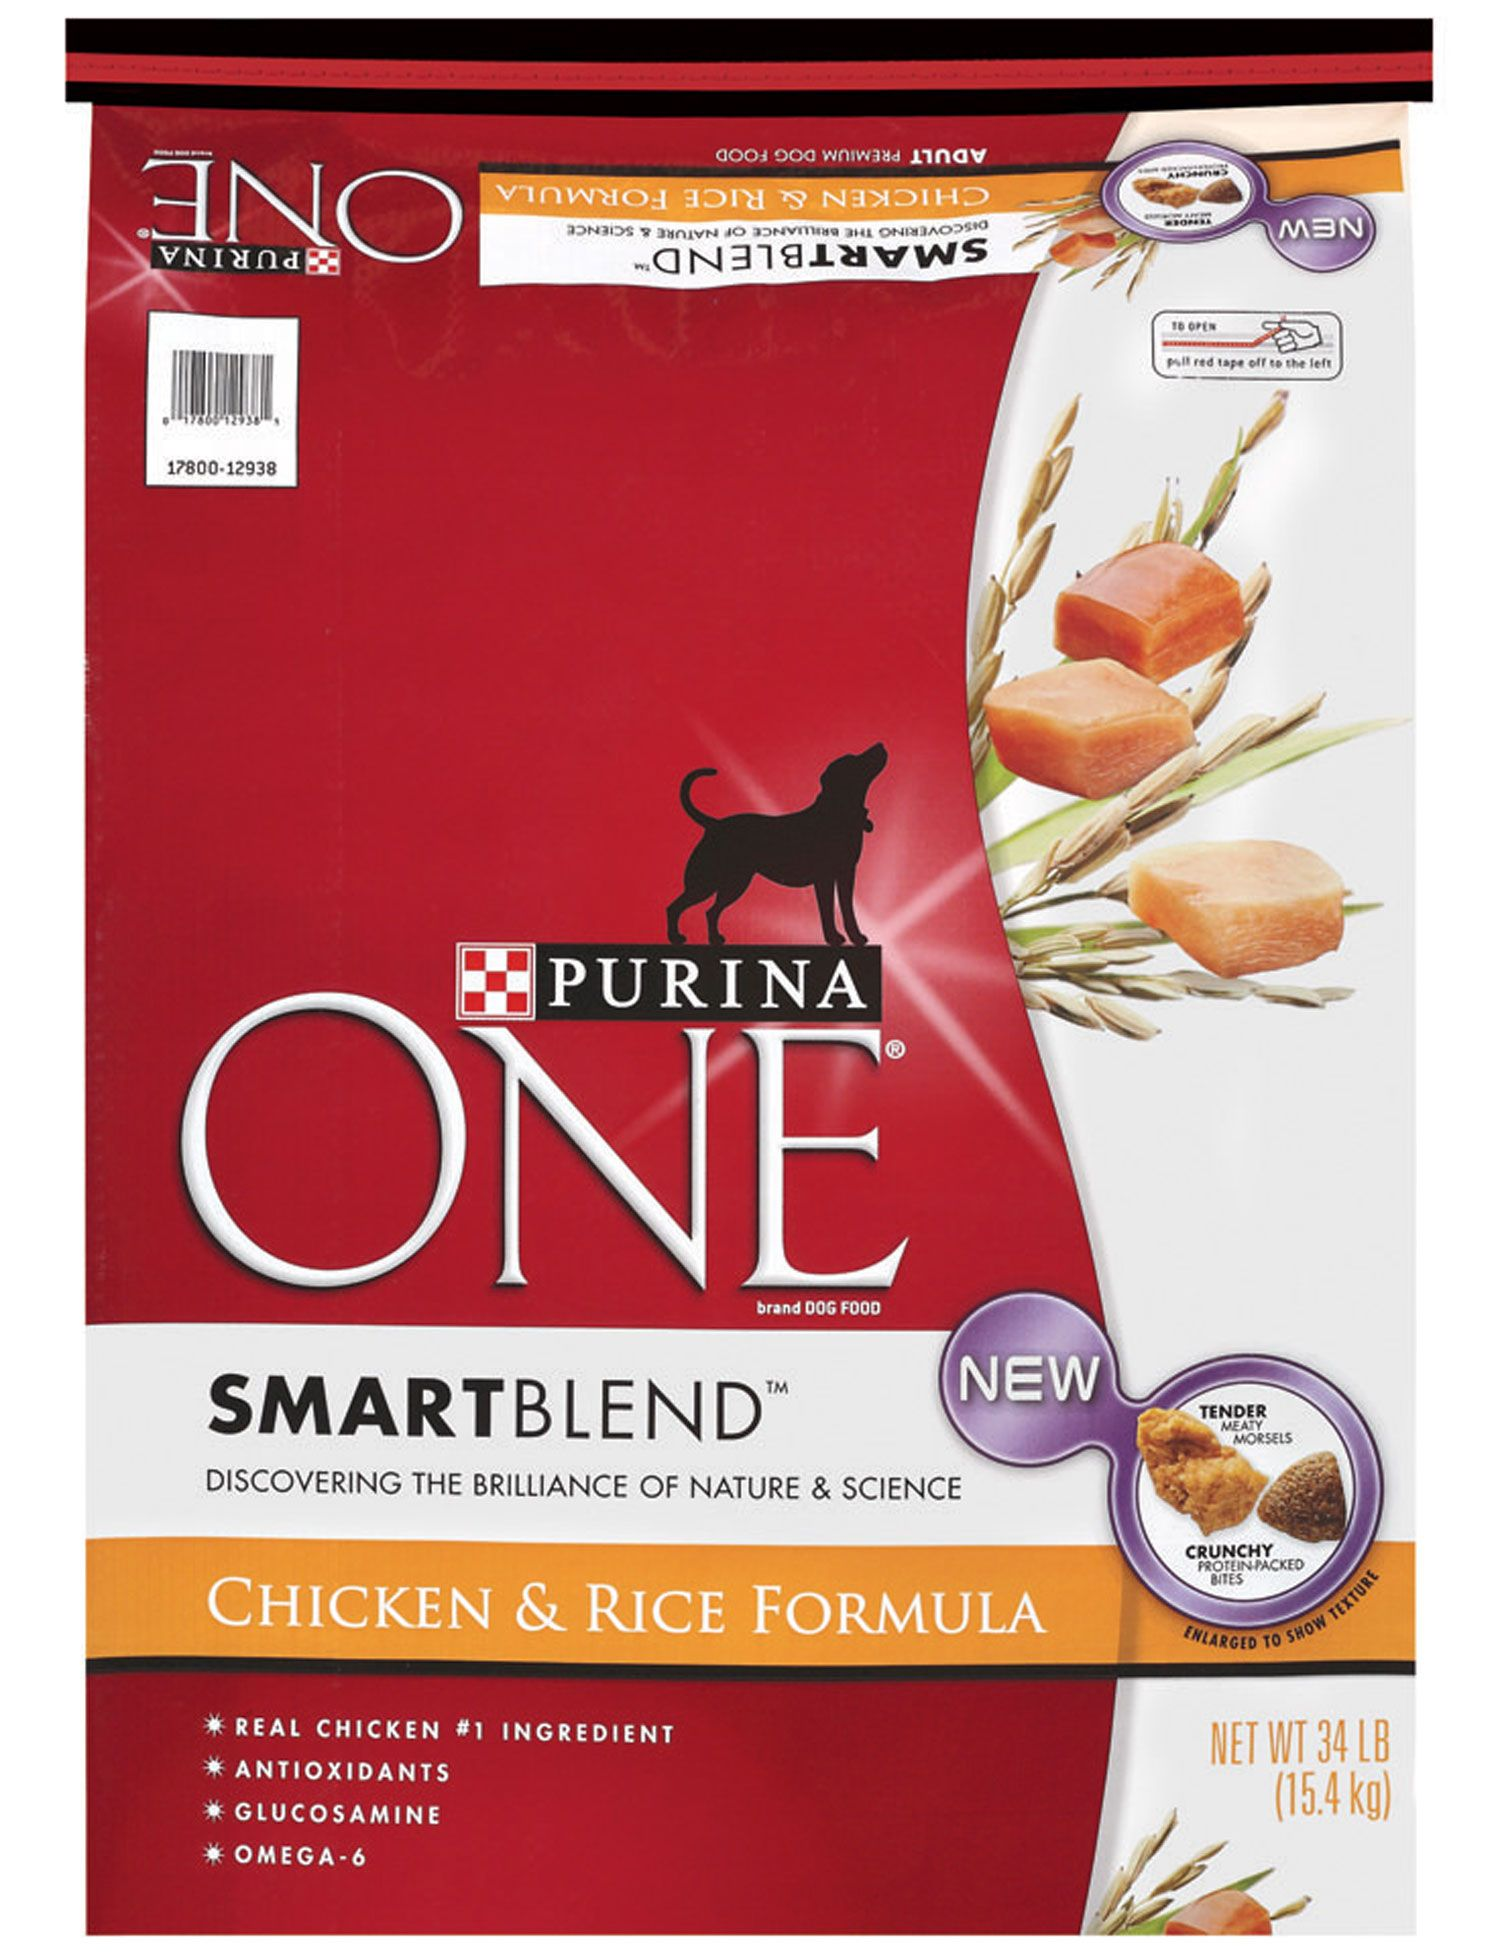 image about Purina One Printable Coupon referred to as $1.50 off just one Purina 1 Smartblend Dry Pet Food stuff Printable